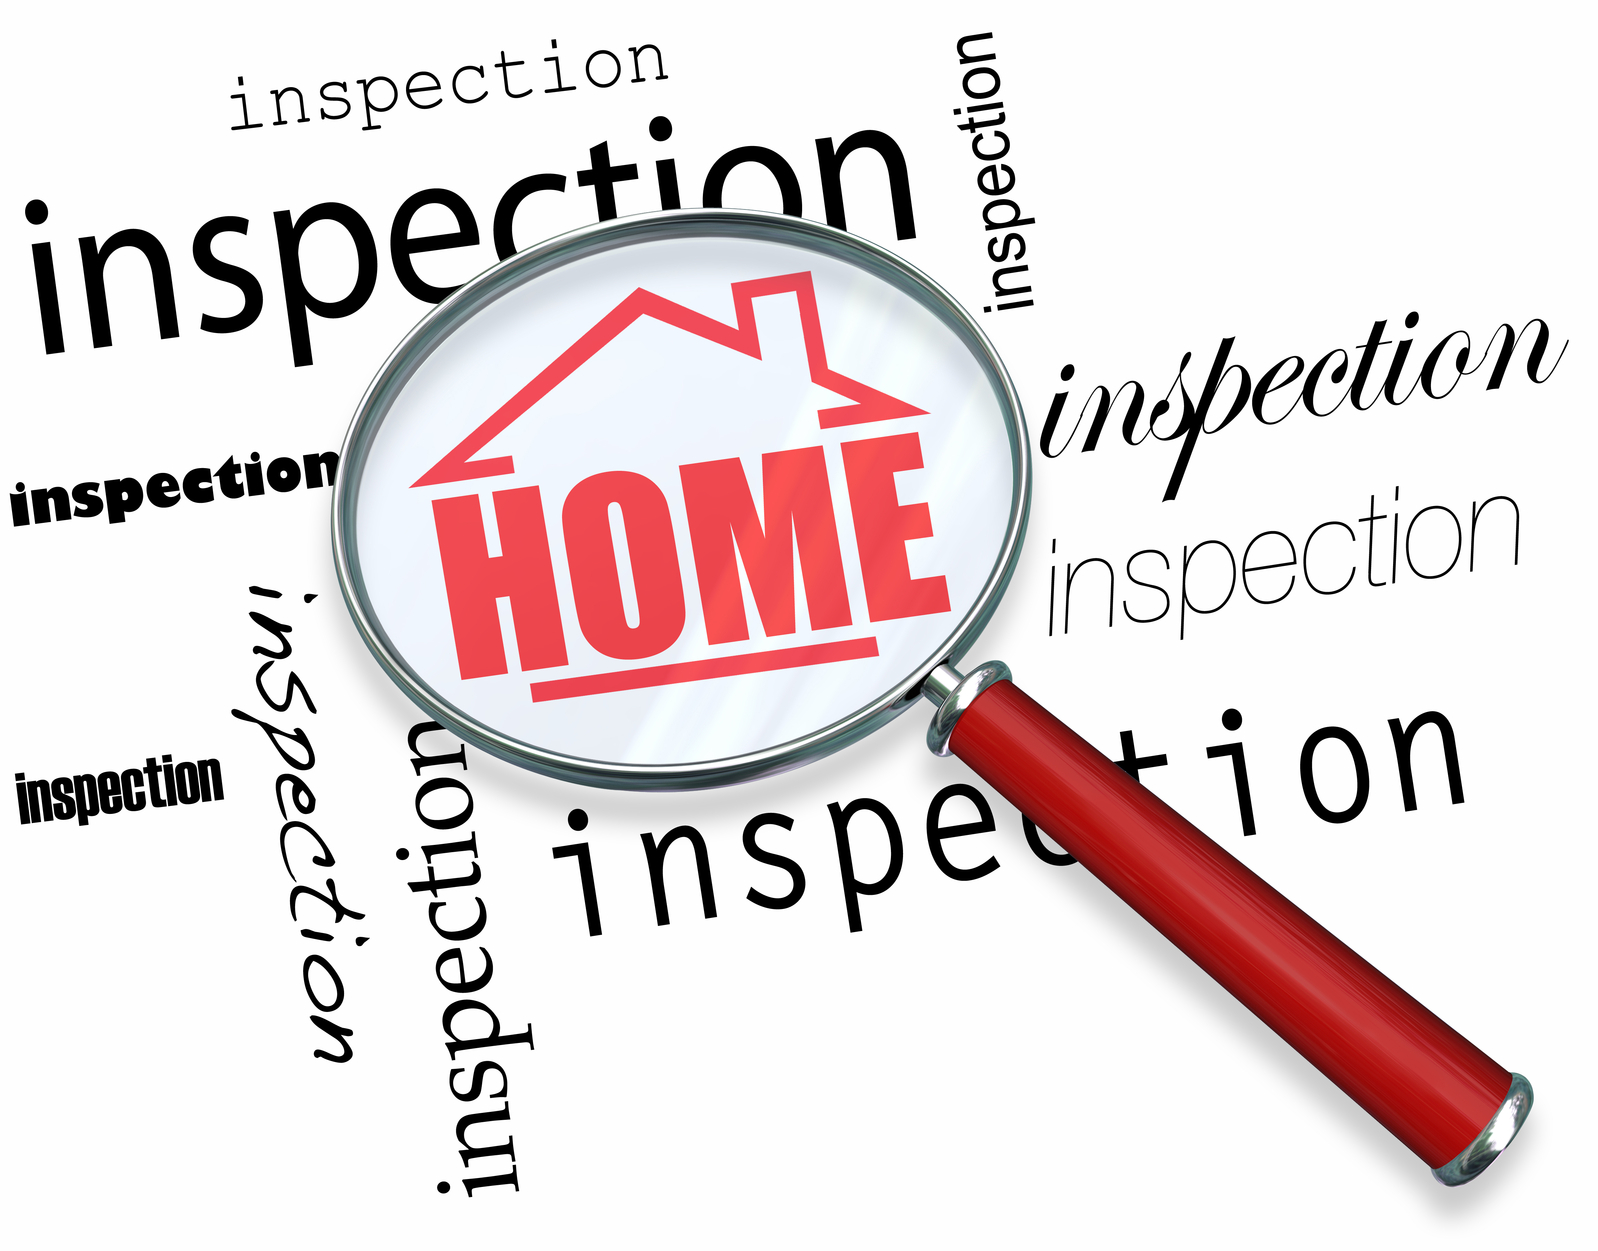 Once A Buyer And Seller Reach Mutual Acceptance On A Property, A Home  Inspector Is Hired To Determine If The Home Is In Need Of Any Repairs.